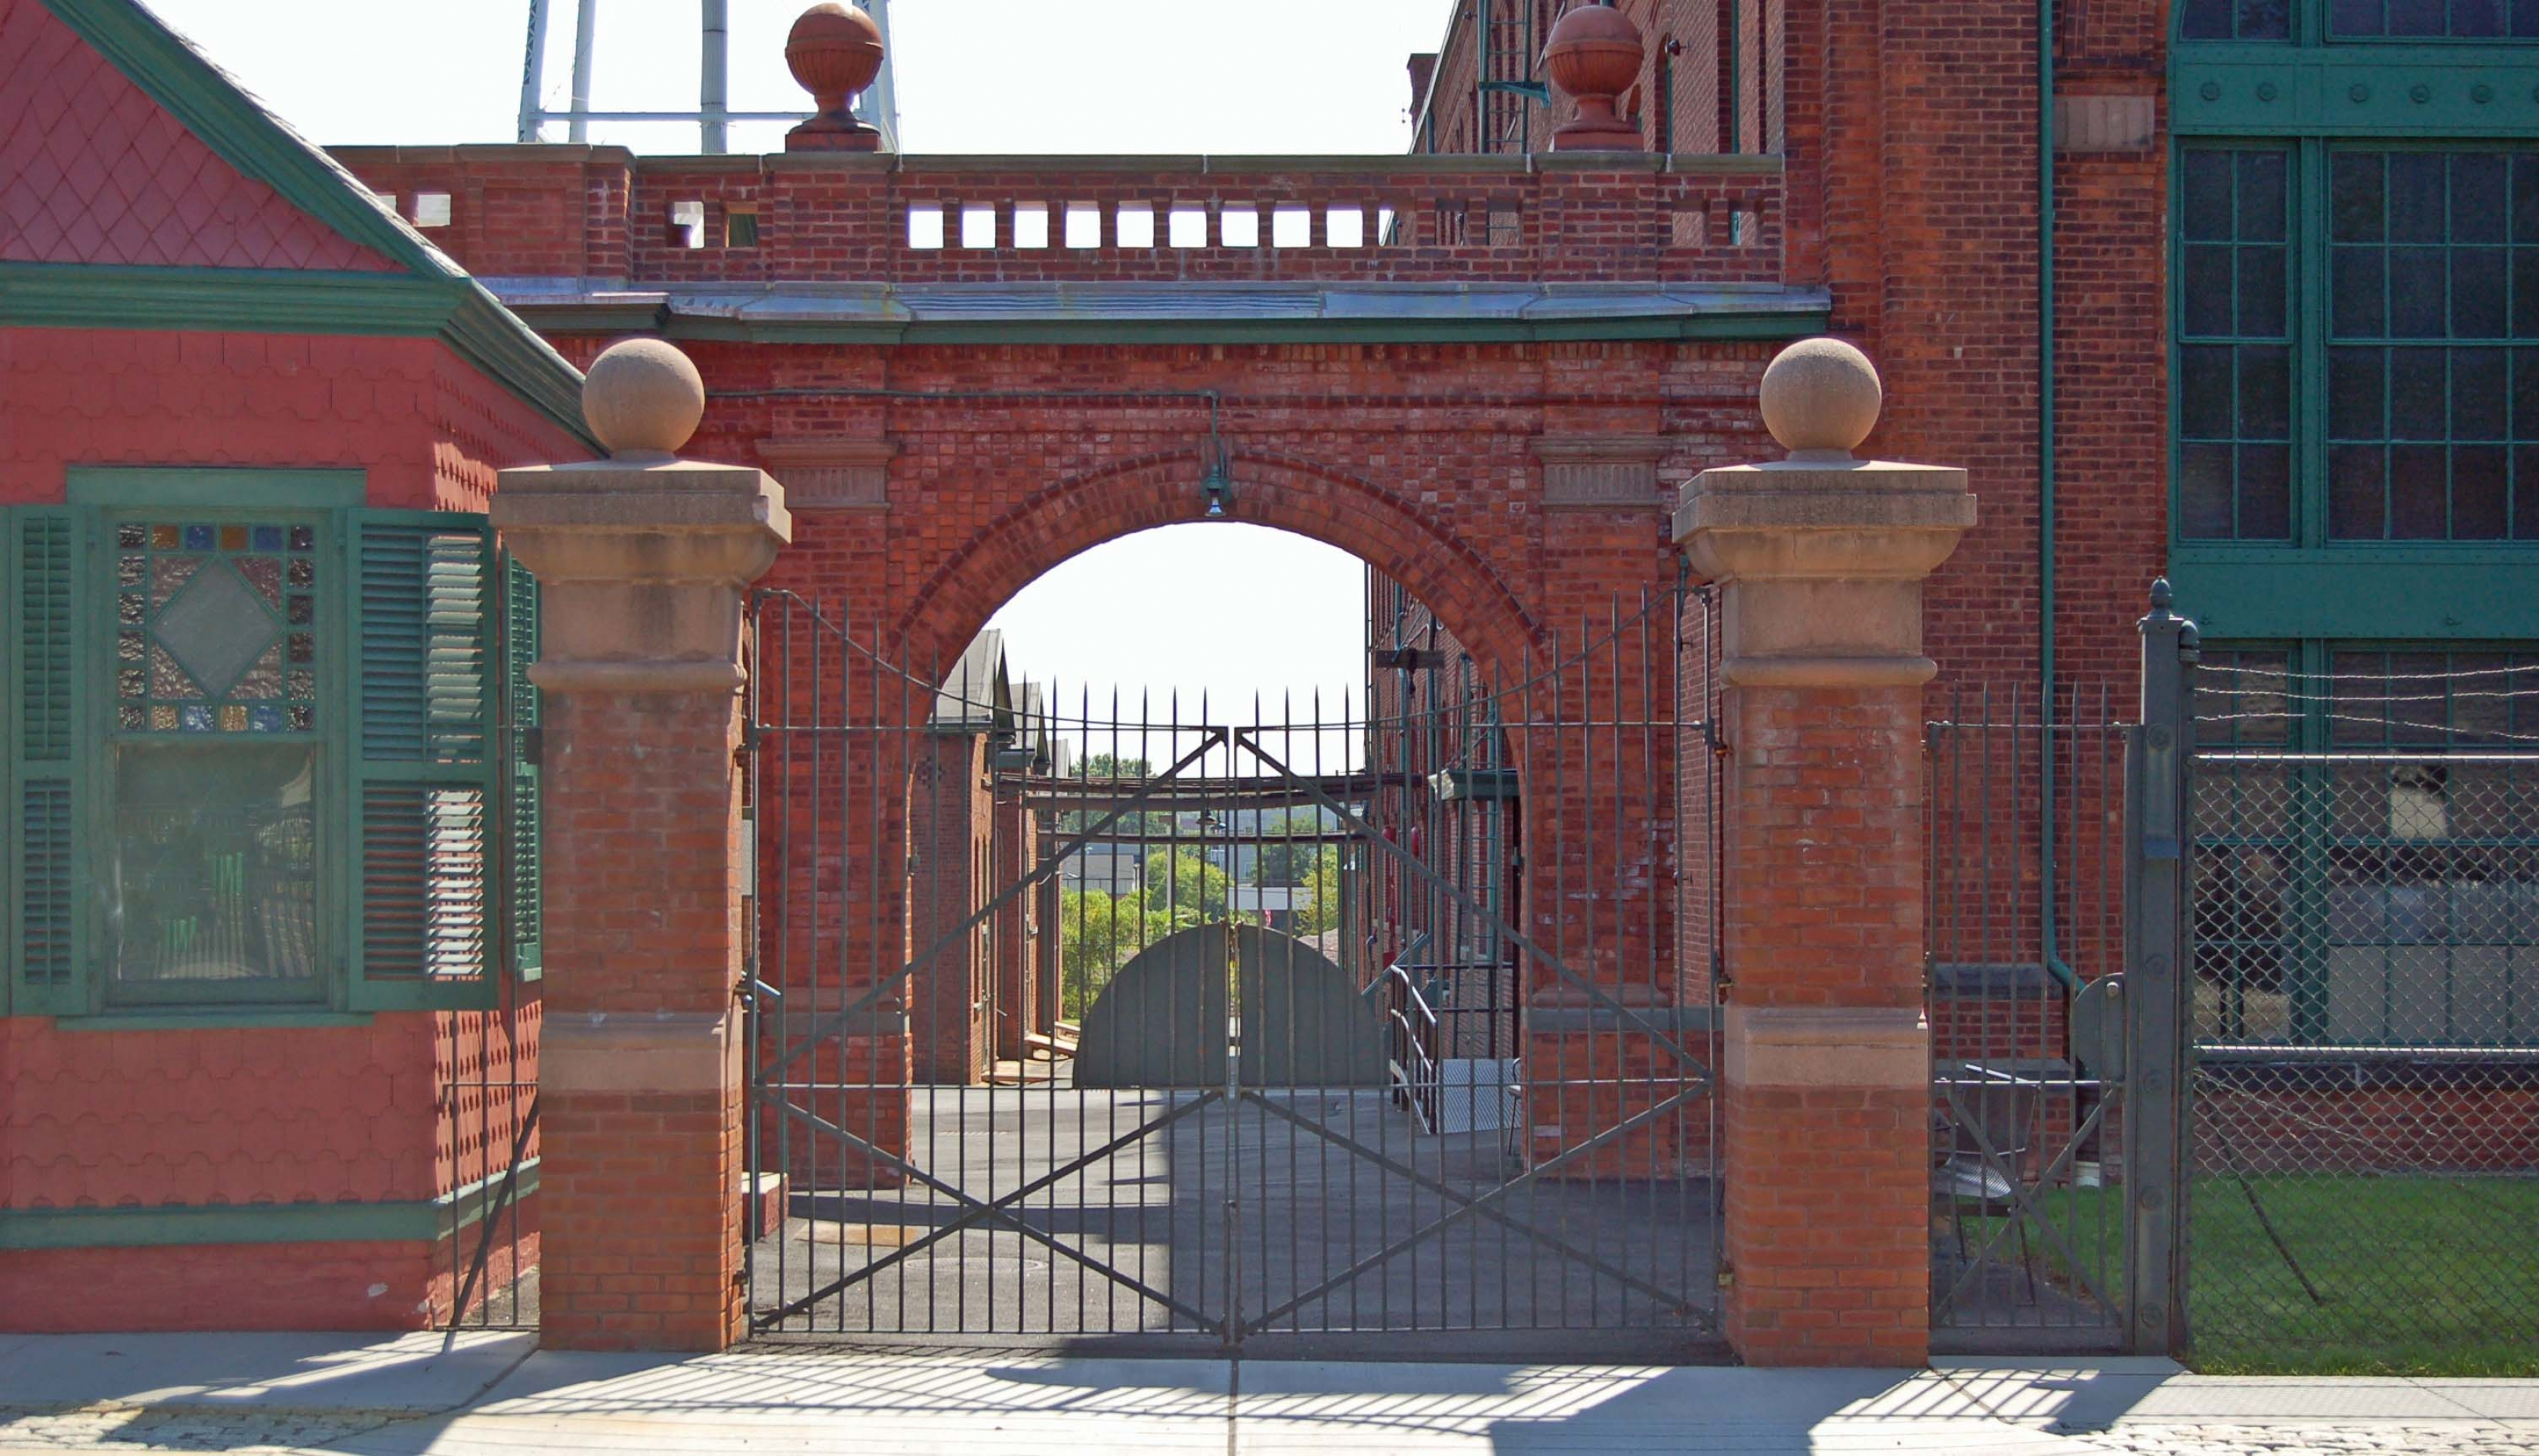 Metal gate entrance fo a red brick and green-windowed building at the Thomas Edison National Historical Park